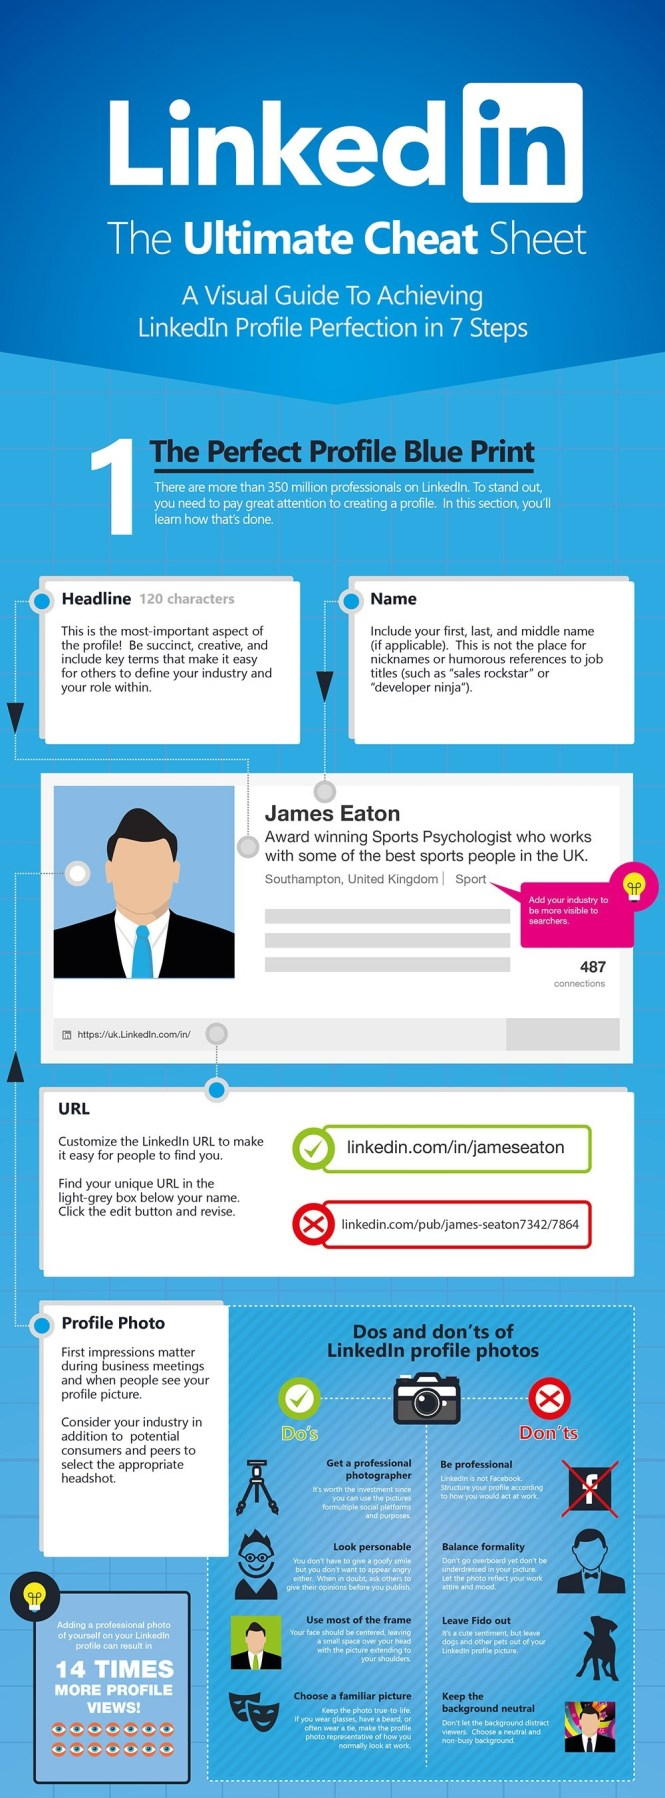 Tips to optimize his linkedin profile